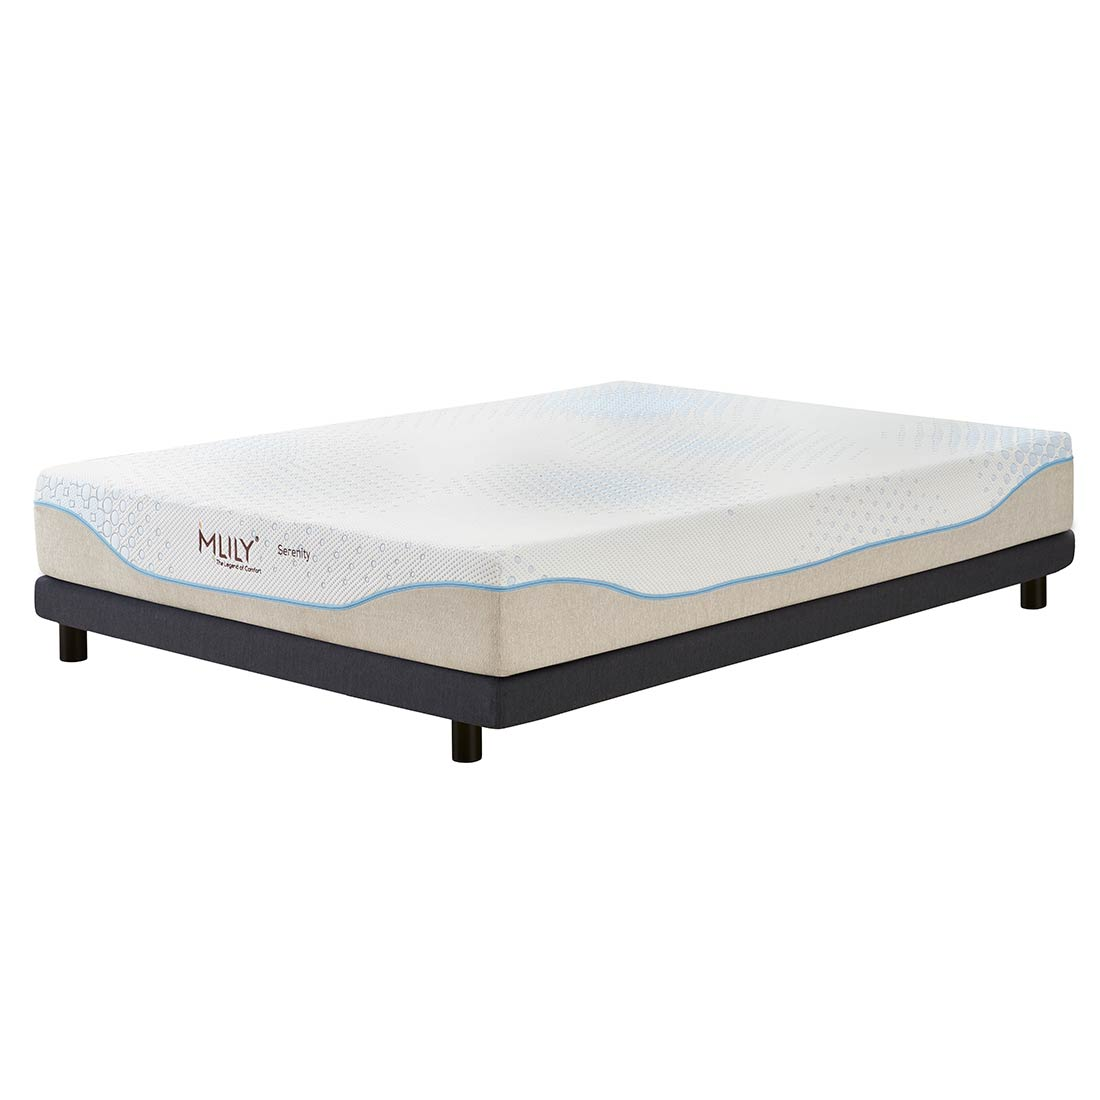 Mattress Adelaide Mlily Serenity Mattress Furniture Adelaide